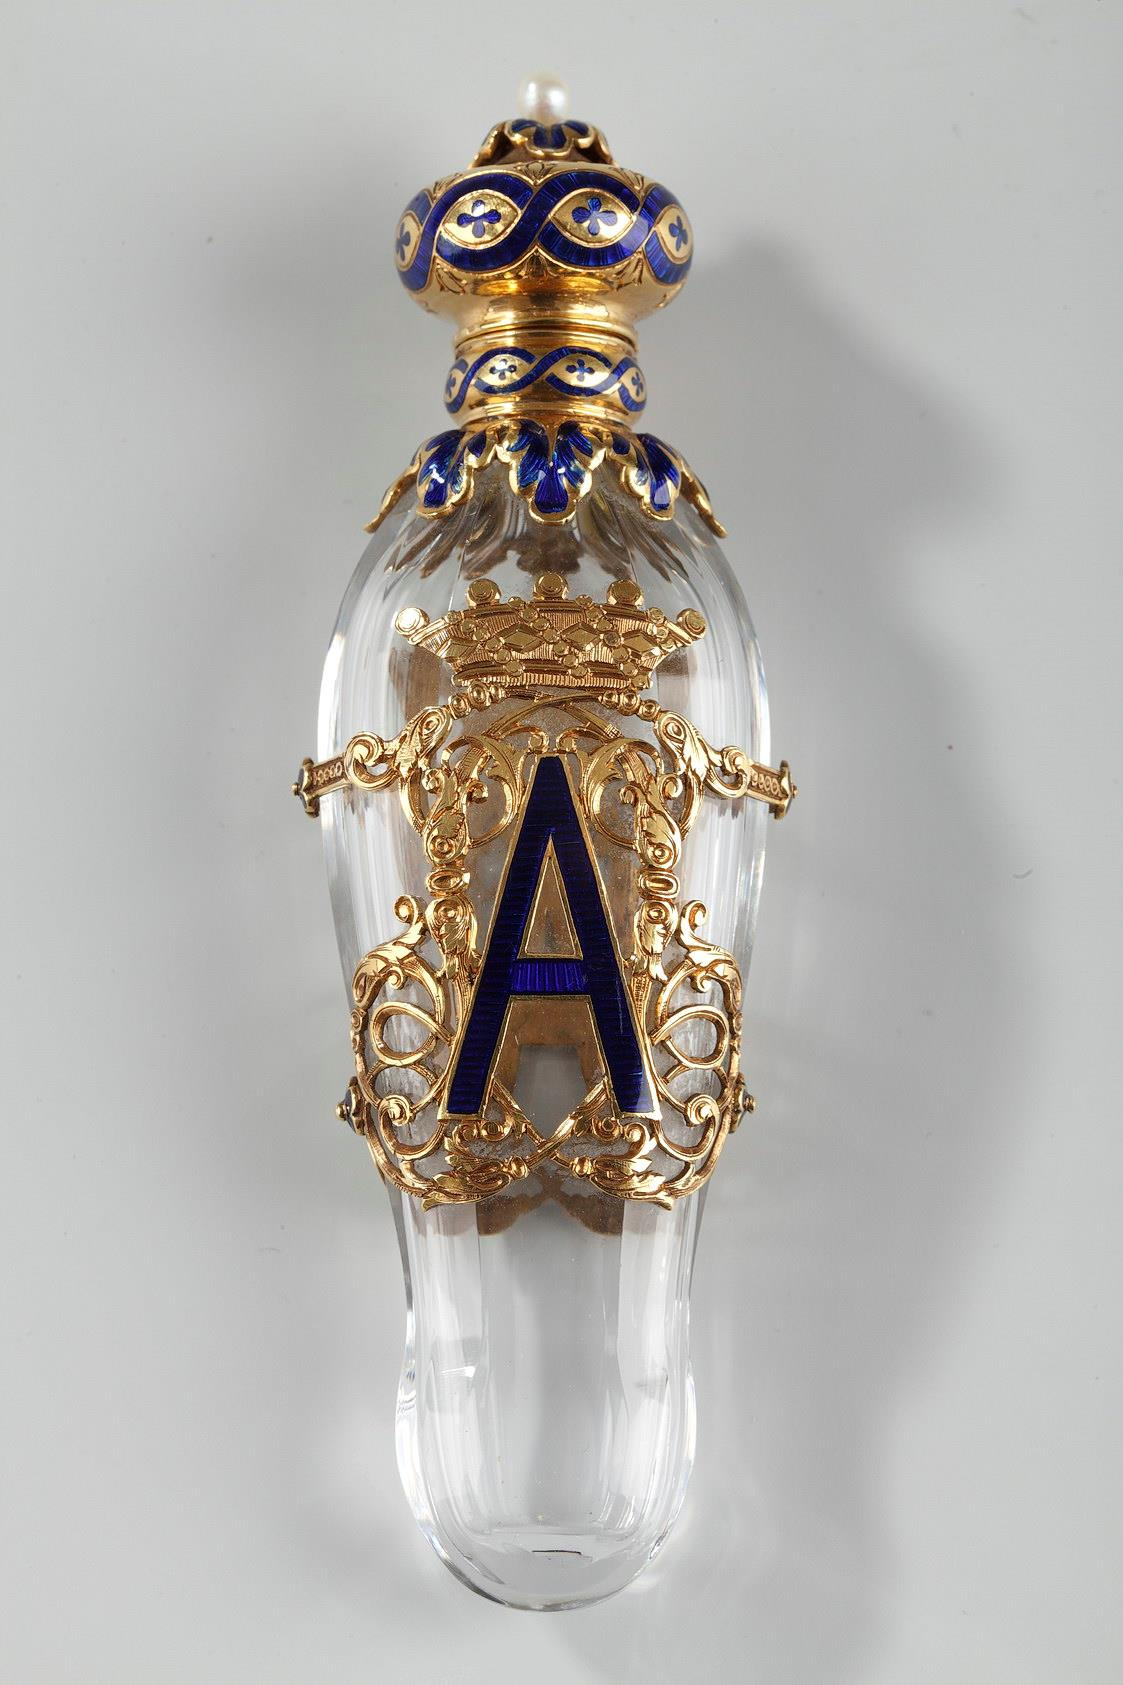 EXCEPTIONAL CRYSTAL FLASK WITH ENAMELED GOLD MOUNTS.<br/> LATE 19TH CENTURY WORK.<br/>